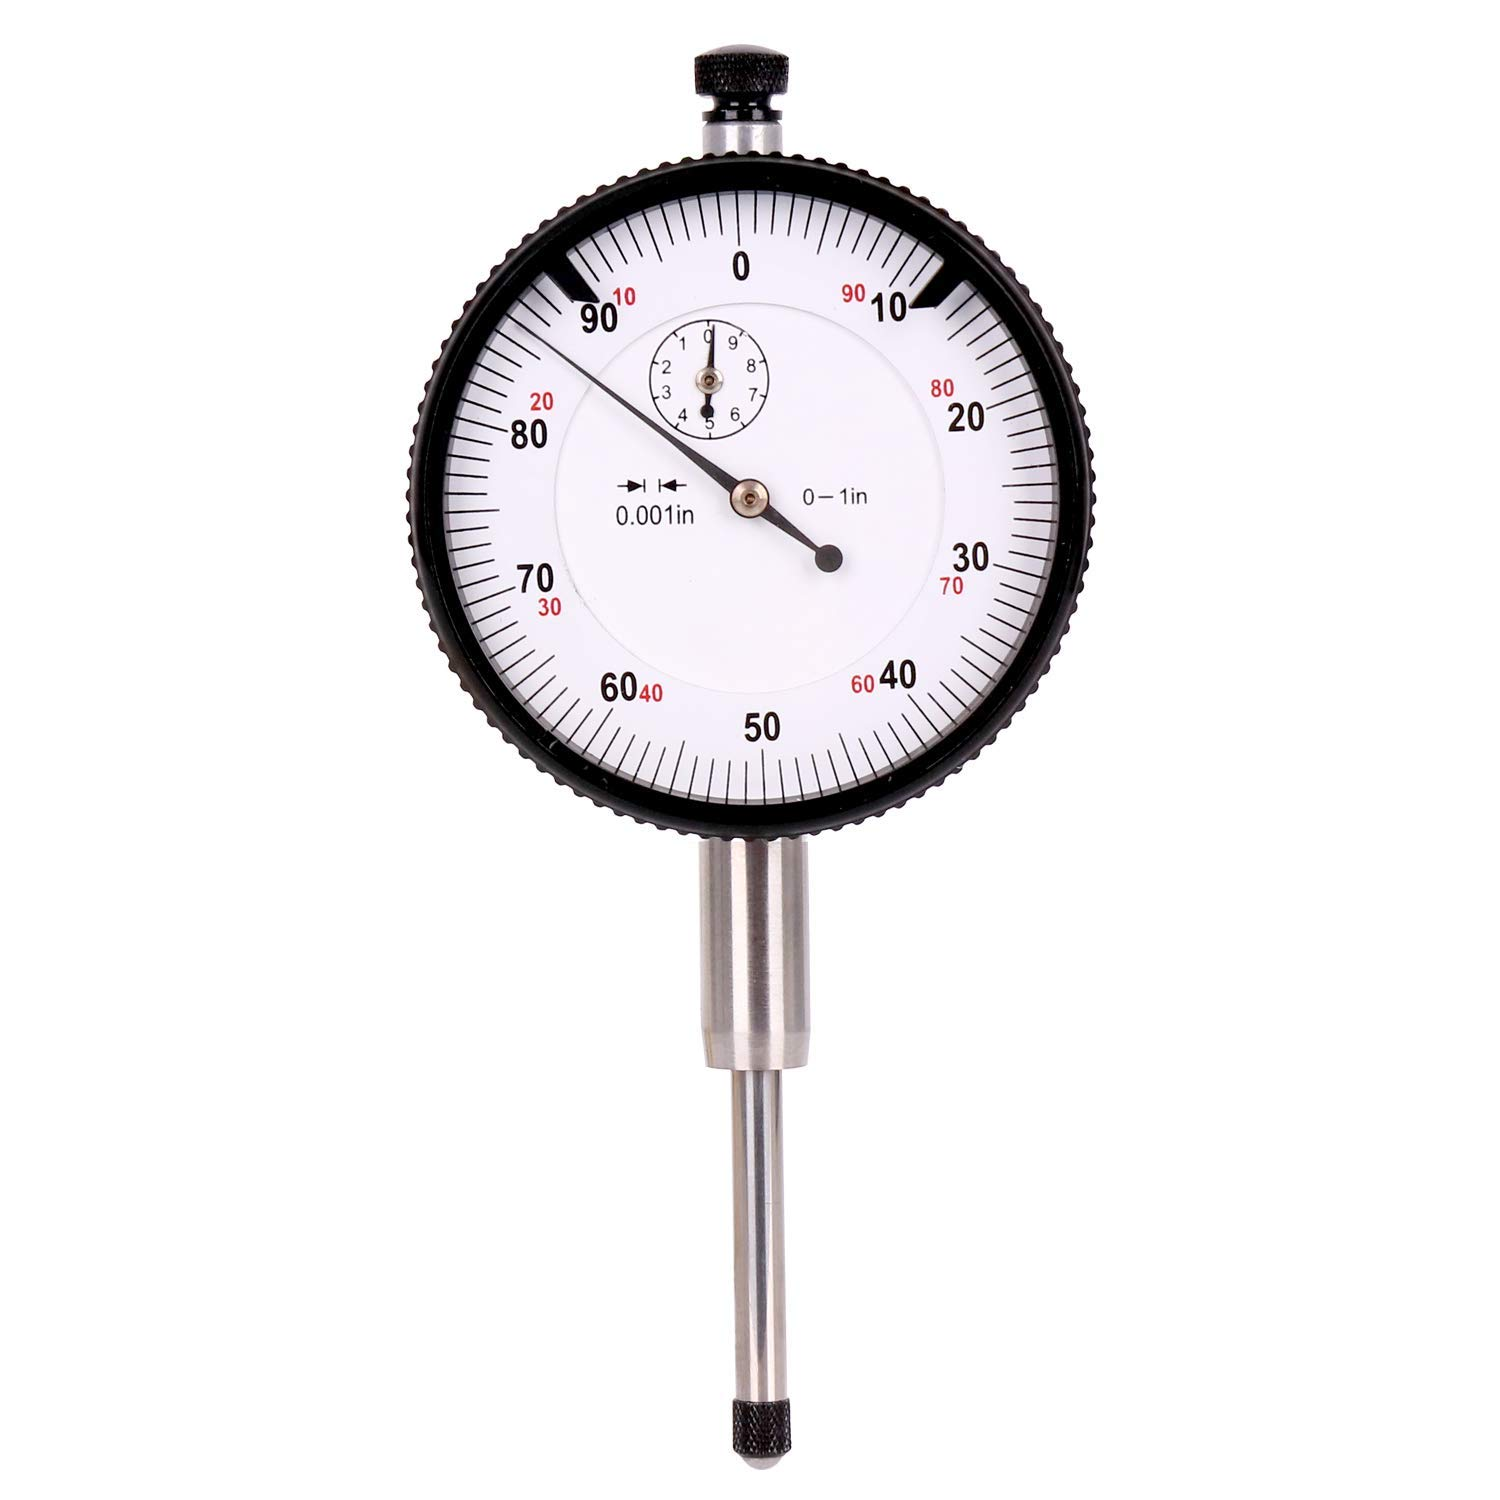 Indicator Dial Probe w// Ruby Ball Contact Points M1.4 for Dial Indicator